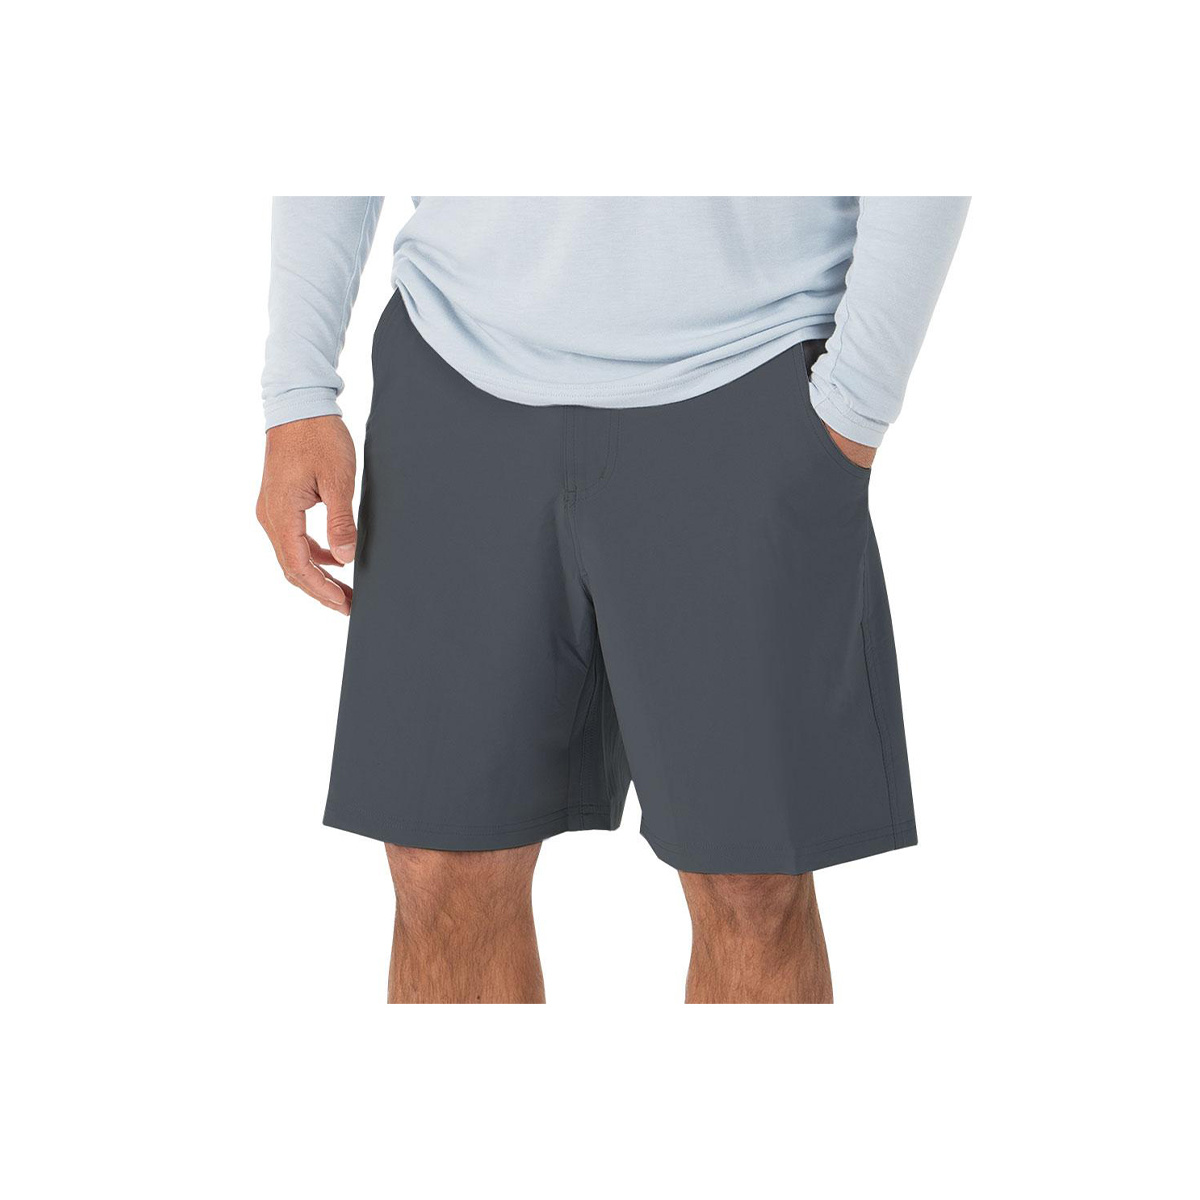 Free Fly Apparel Men's Bamboo-Lined Hybrid Shorts